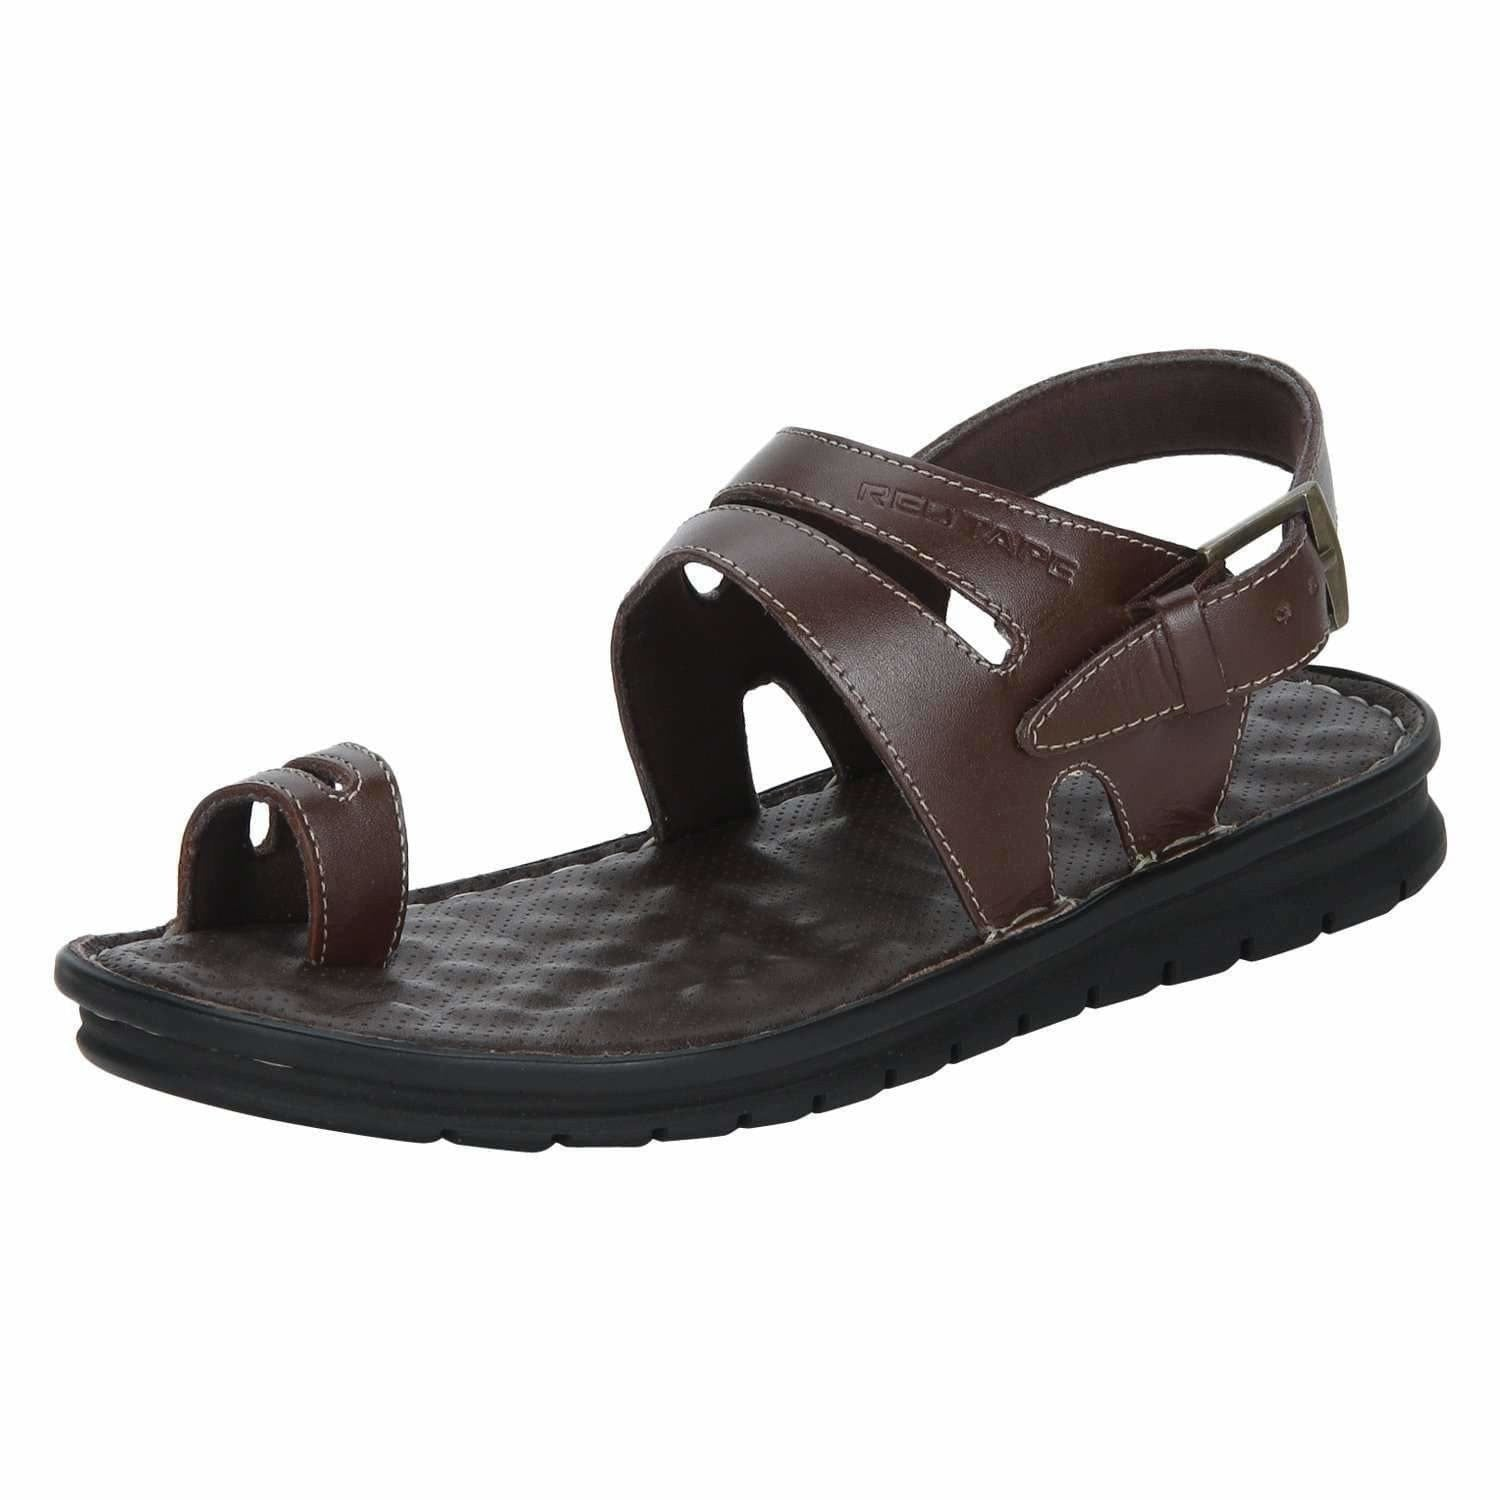 Red Tape Men's Sandals Leather